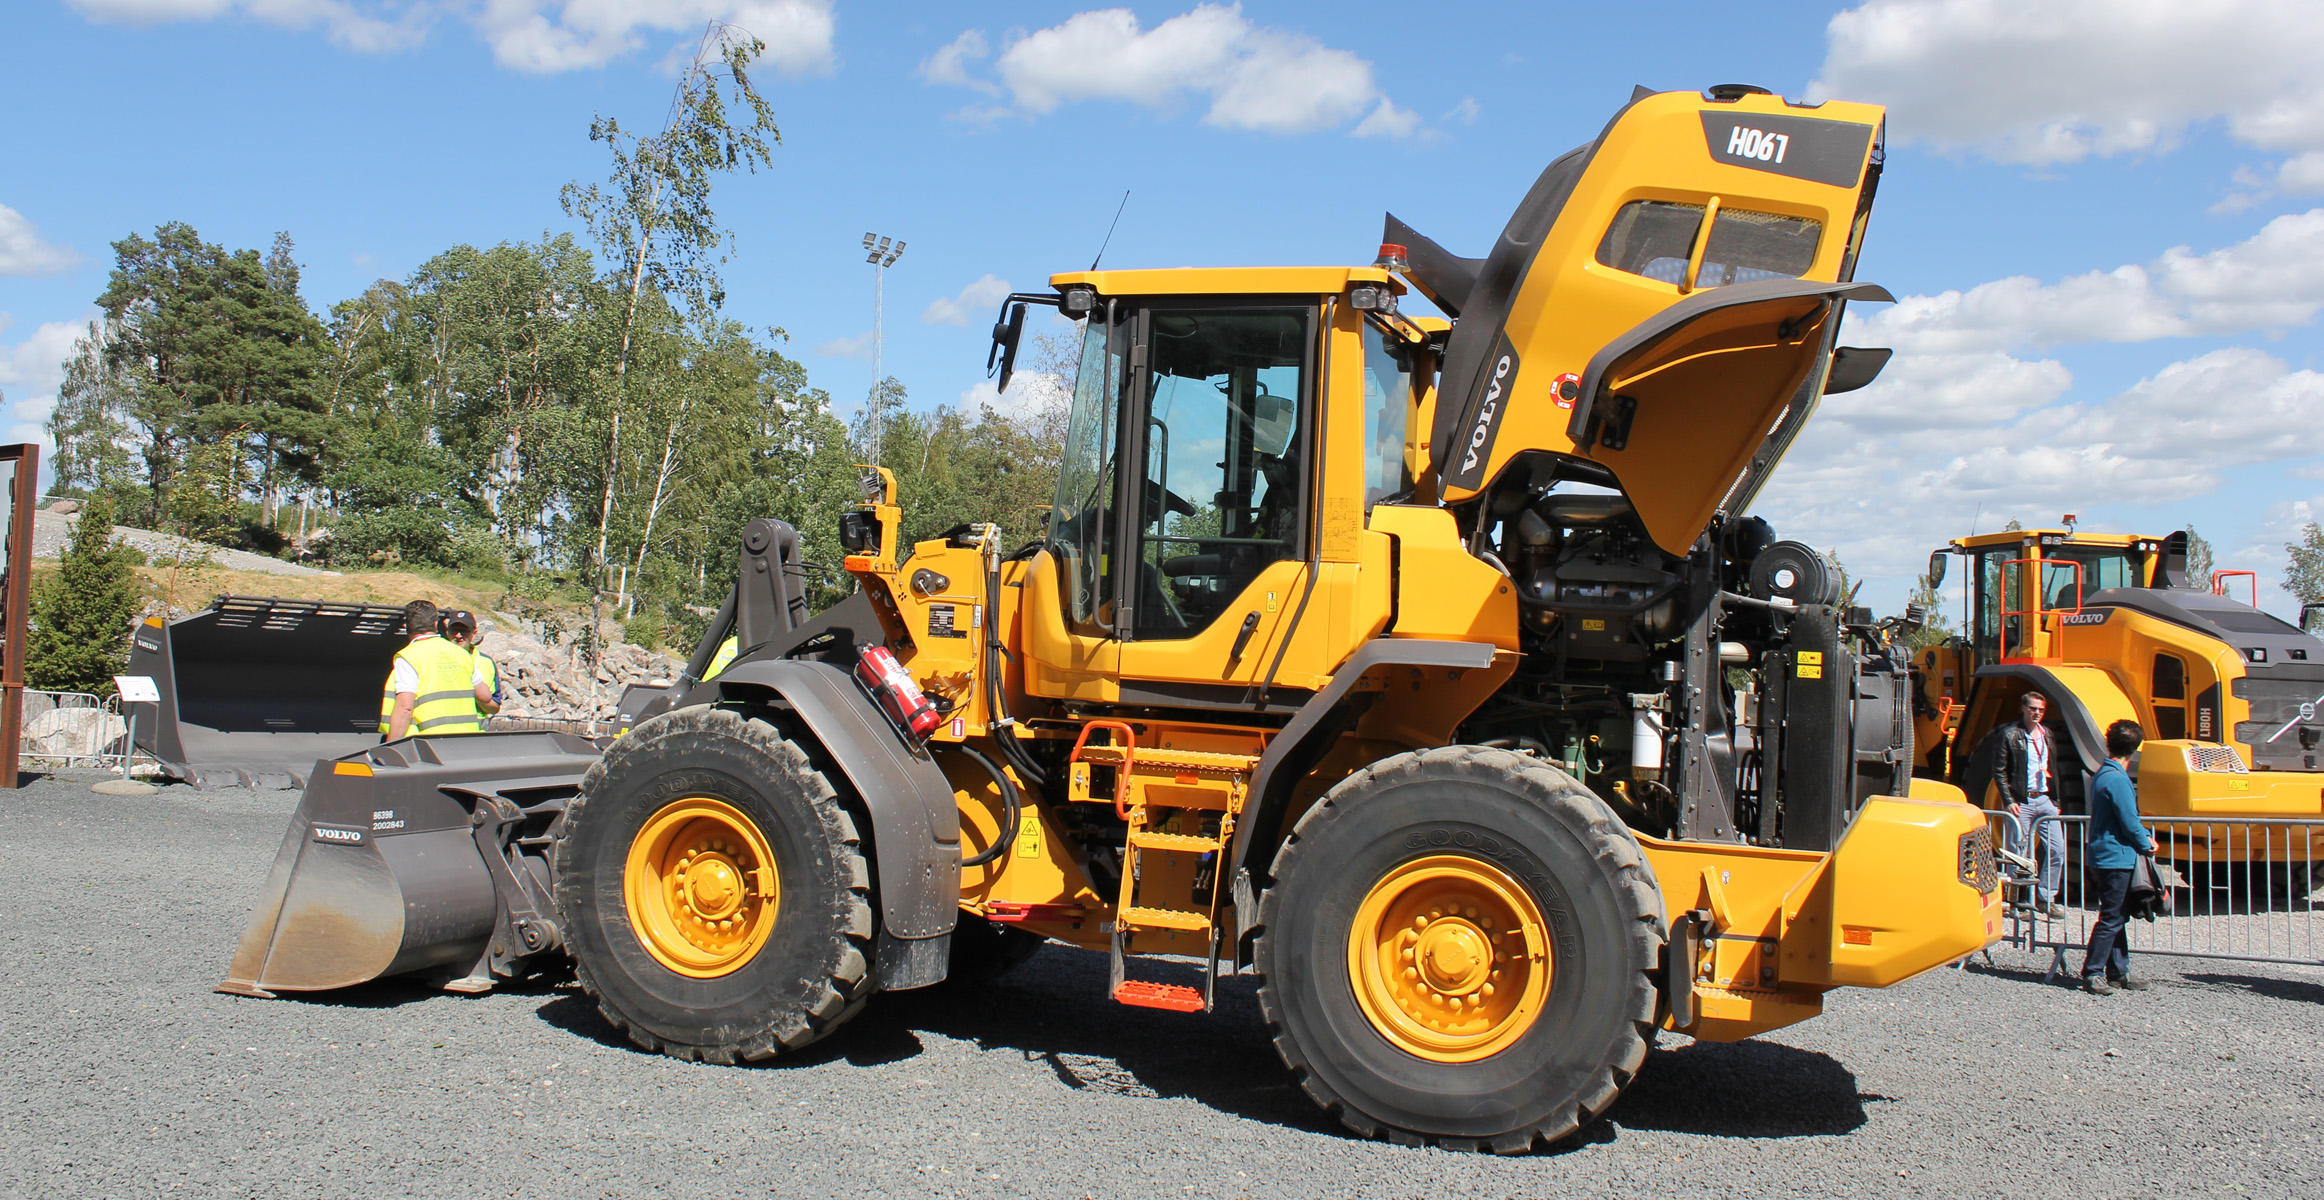 Upgraded Volvo L90H wheel loader at the Volvo Customer Center in Eskilstuna, Sweden